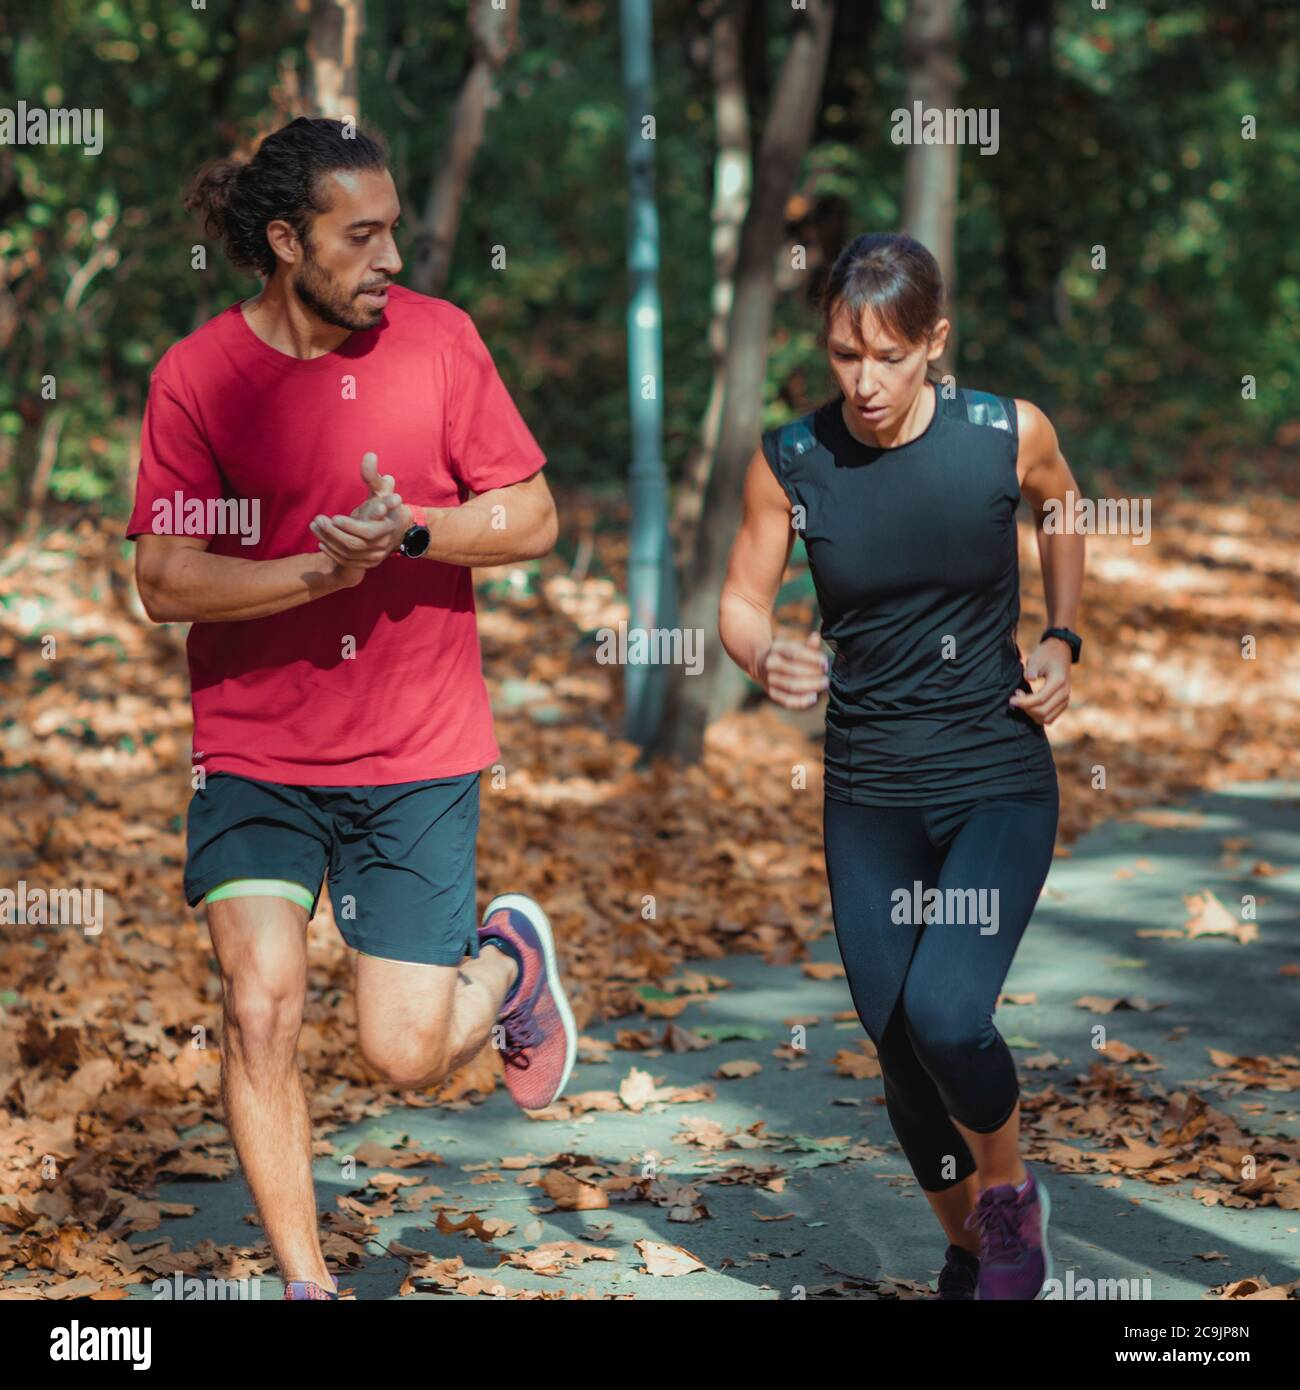 Couple jogging outdoors in park. Stock Photo